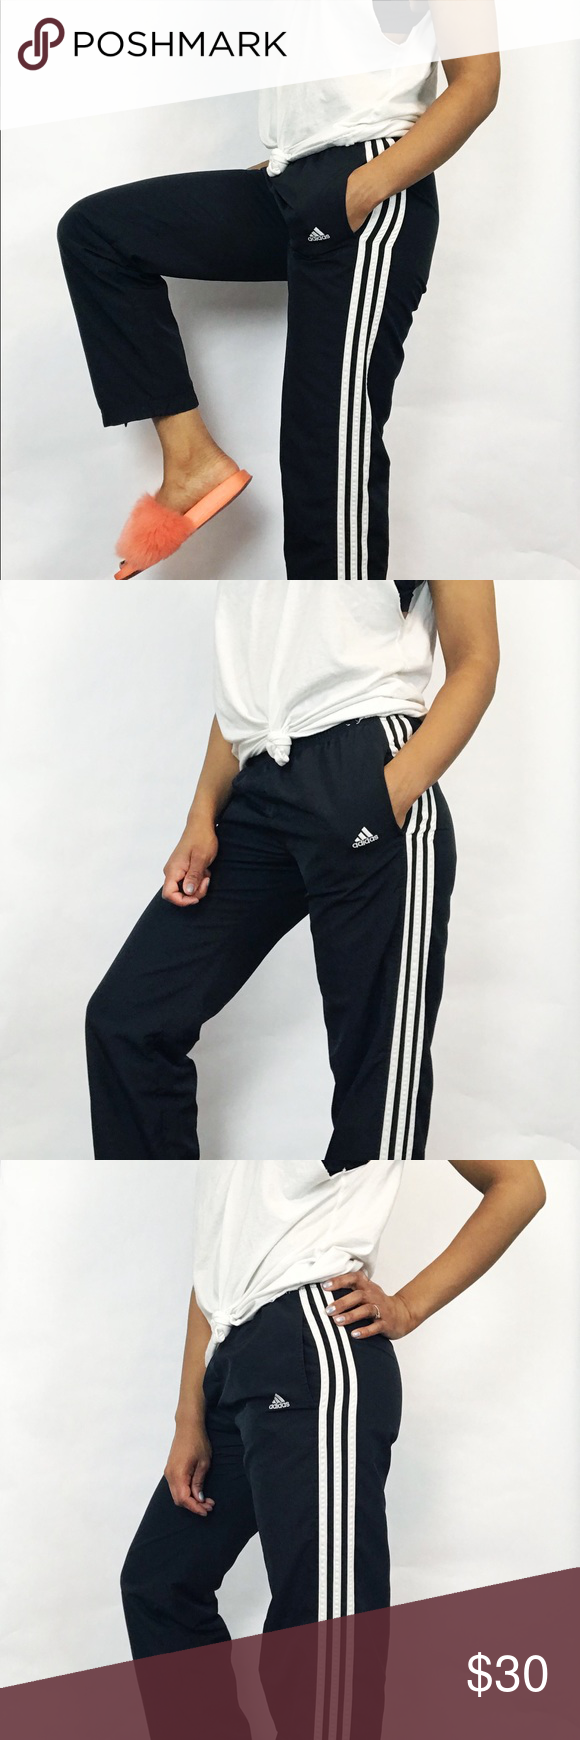 93da084e8d1485 Adidas 90's Vintage Zipper Ankle Track Pants 90's classic 3 stripe  trackpants with front pockets and ankle zippers. Banded waist with  drawstring.